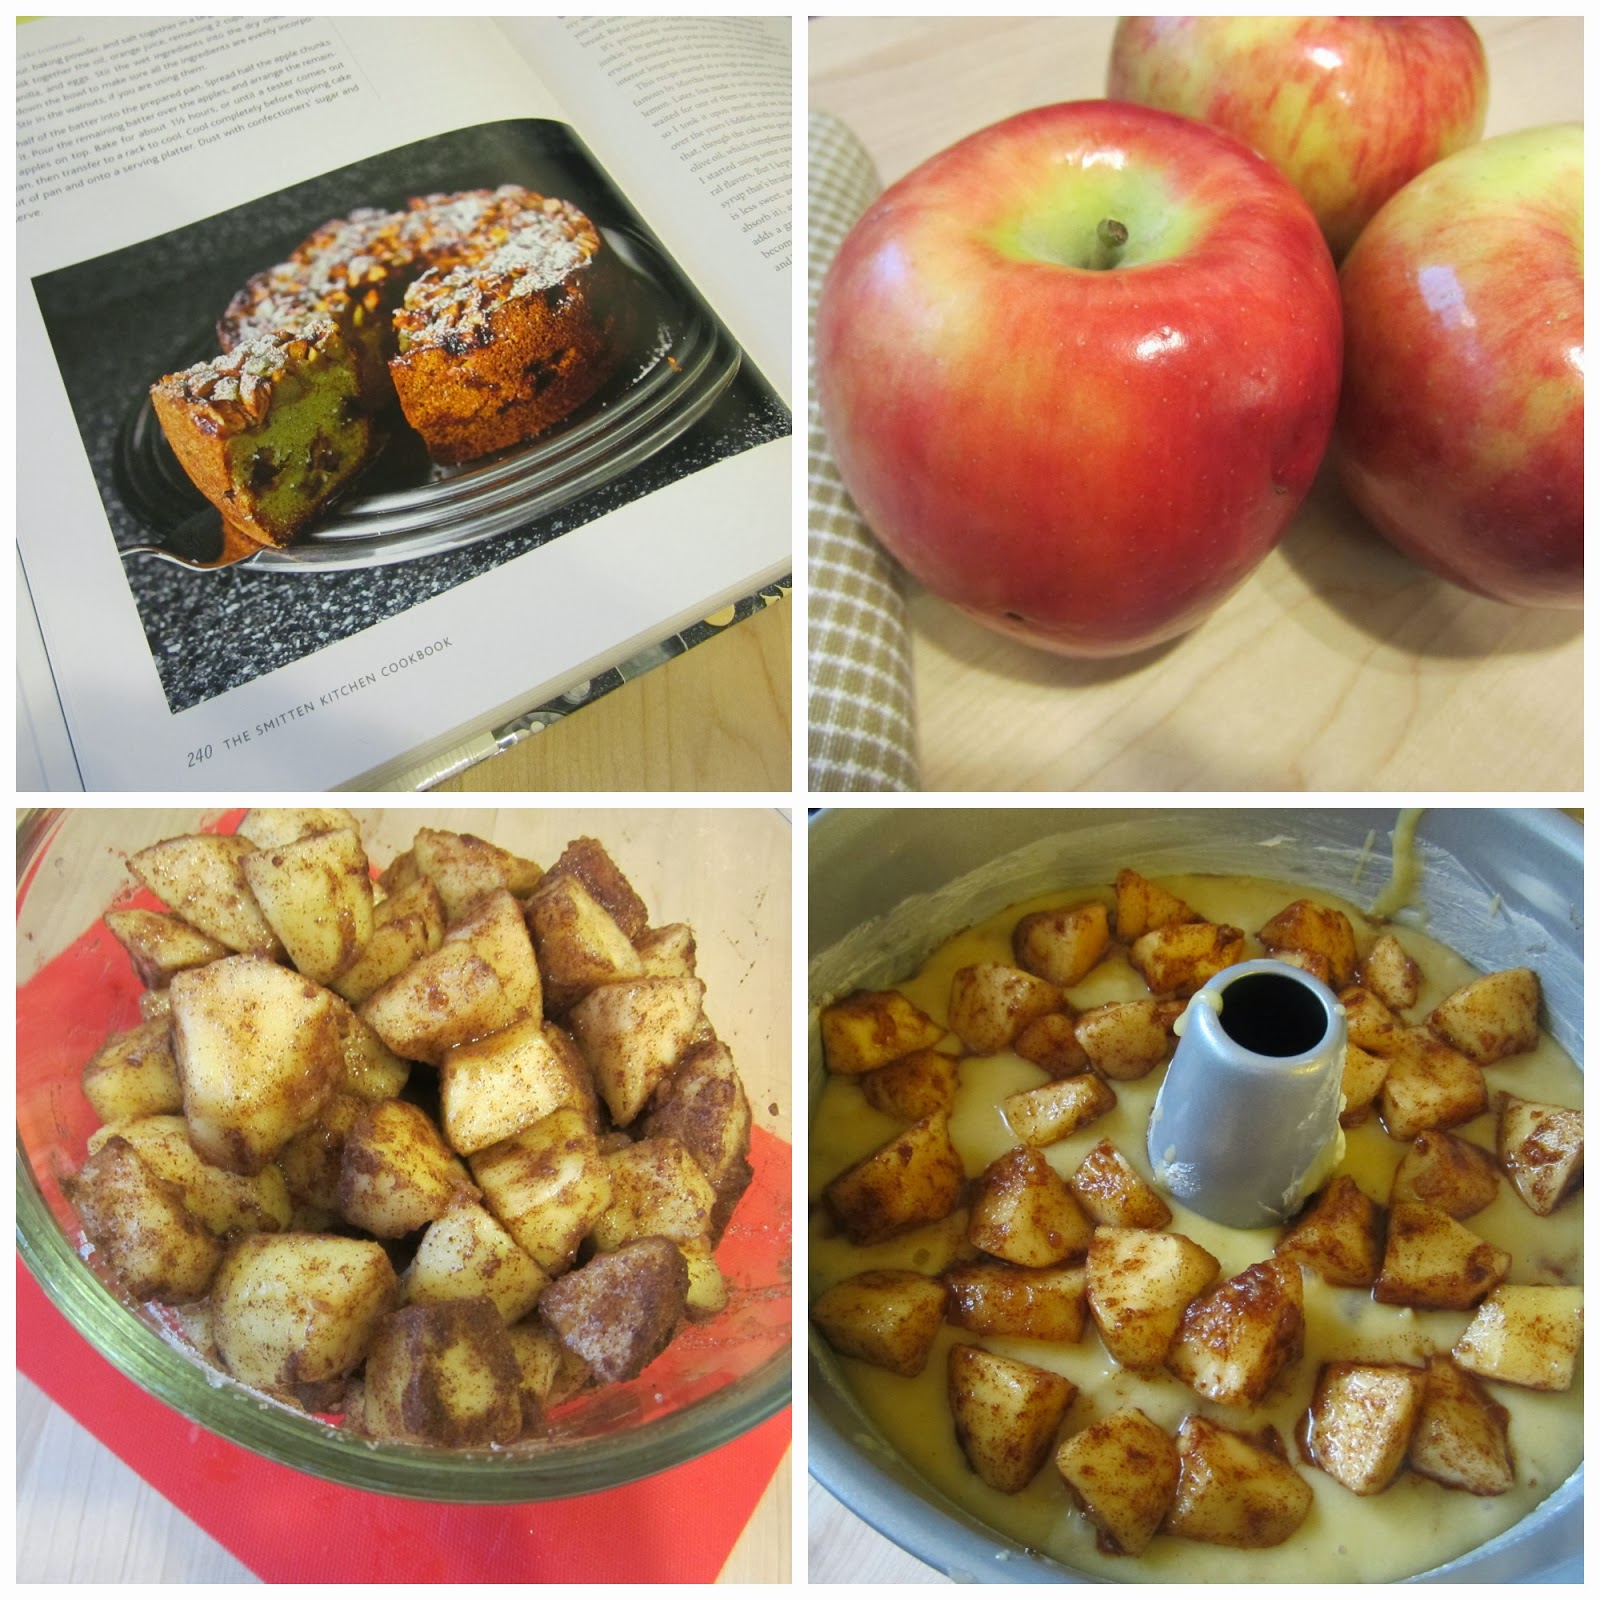 My Favorite Apple Cake Recipe From Smitten Kitchen | Frugal Family ...